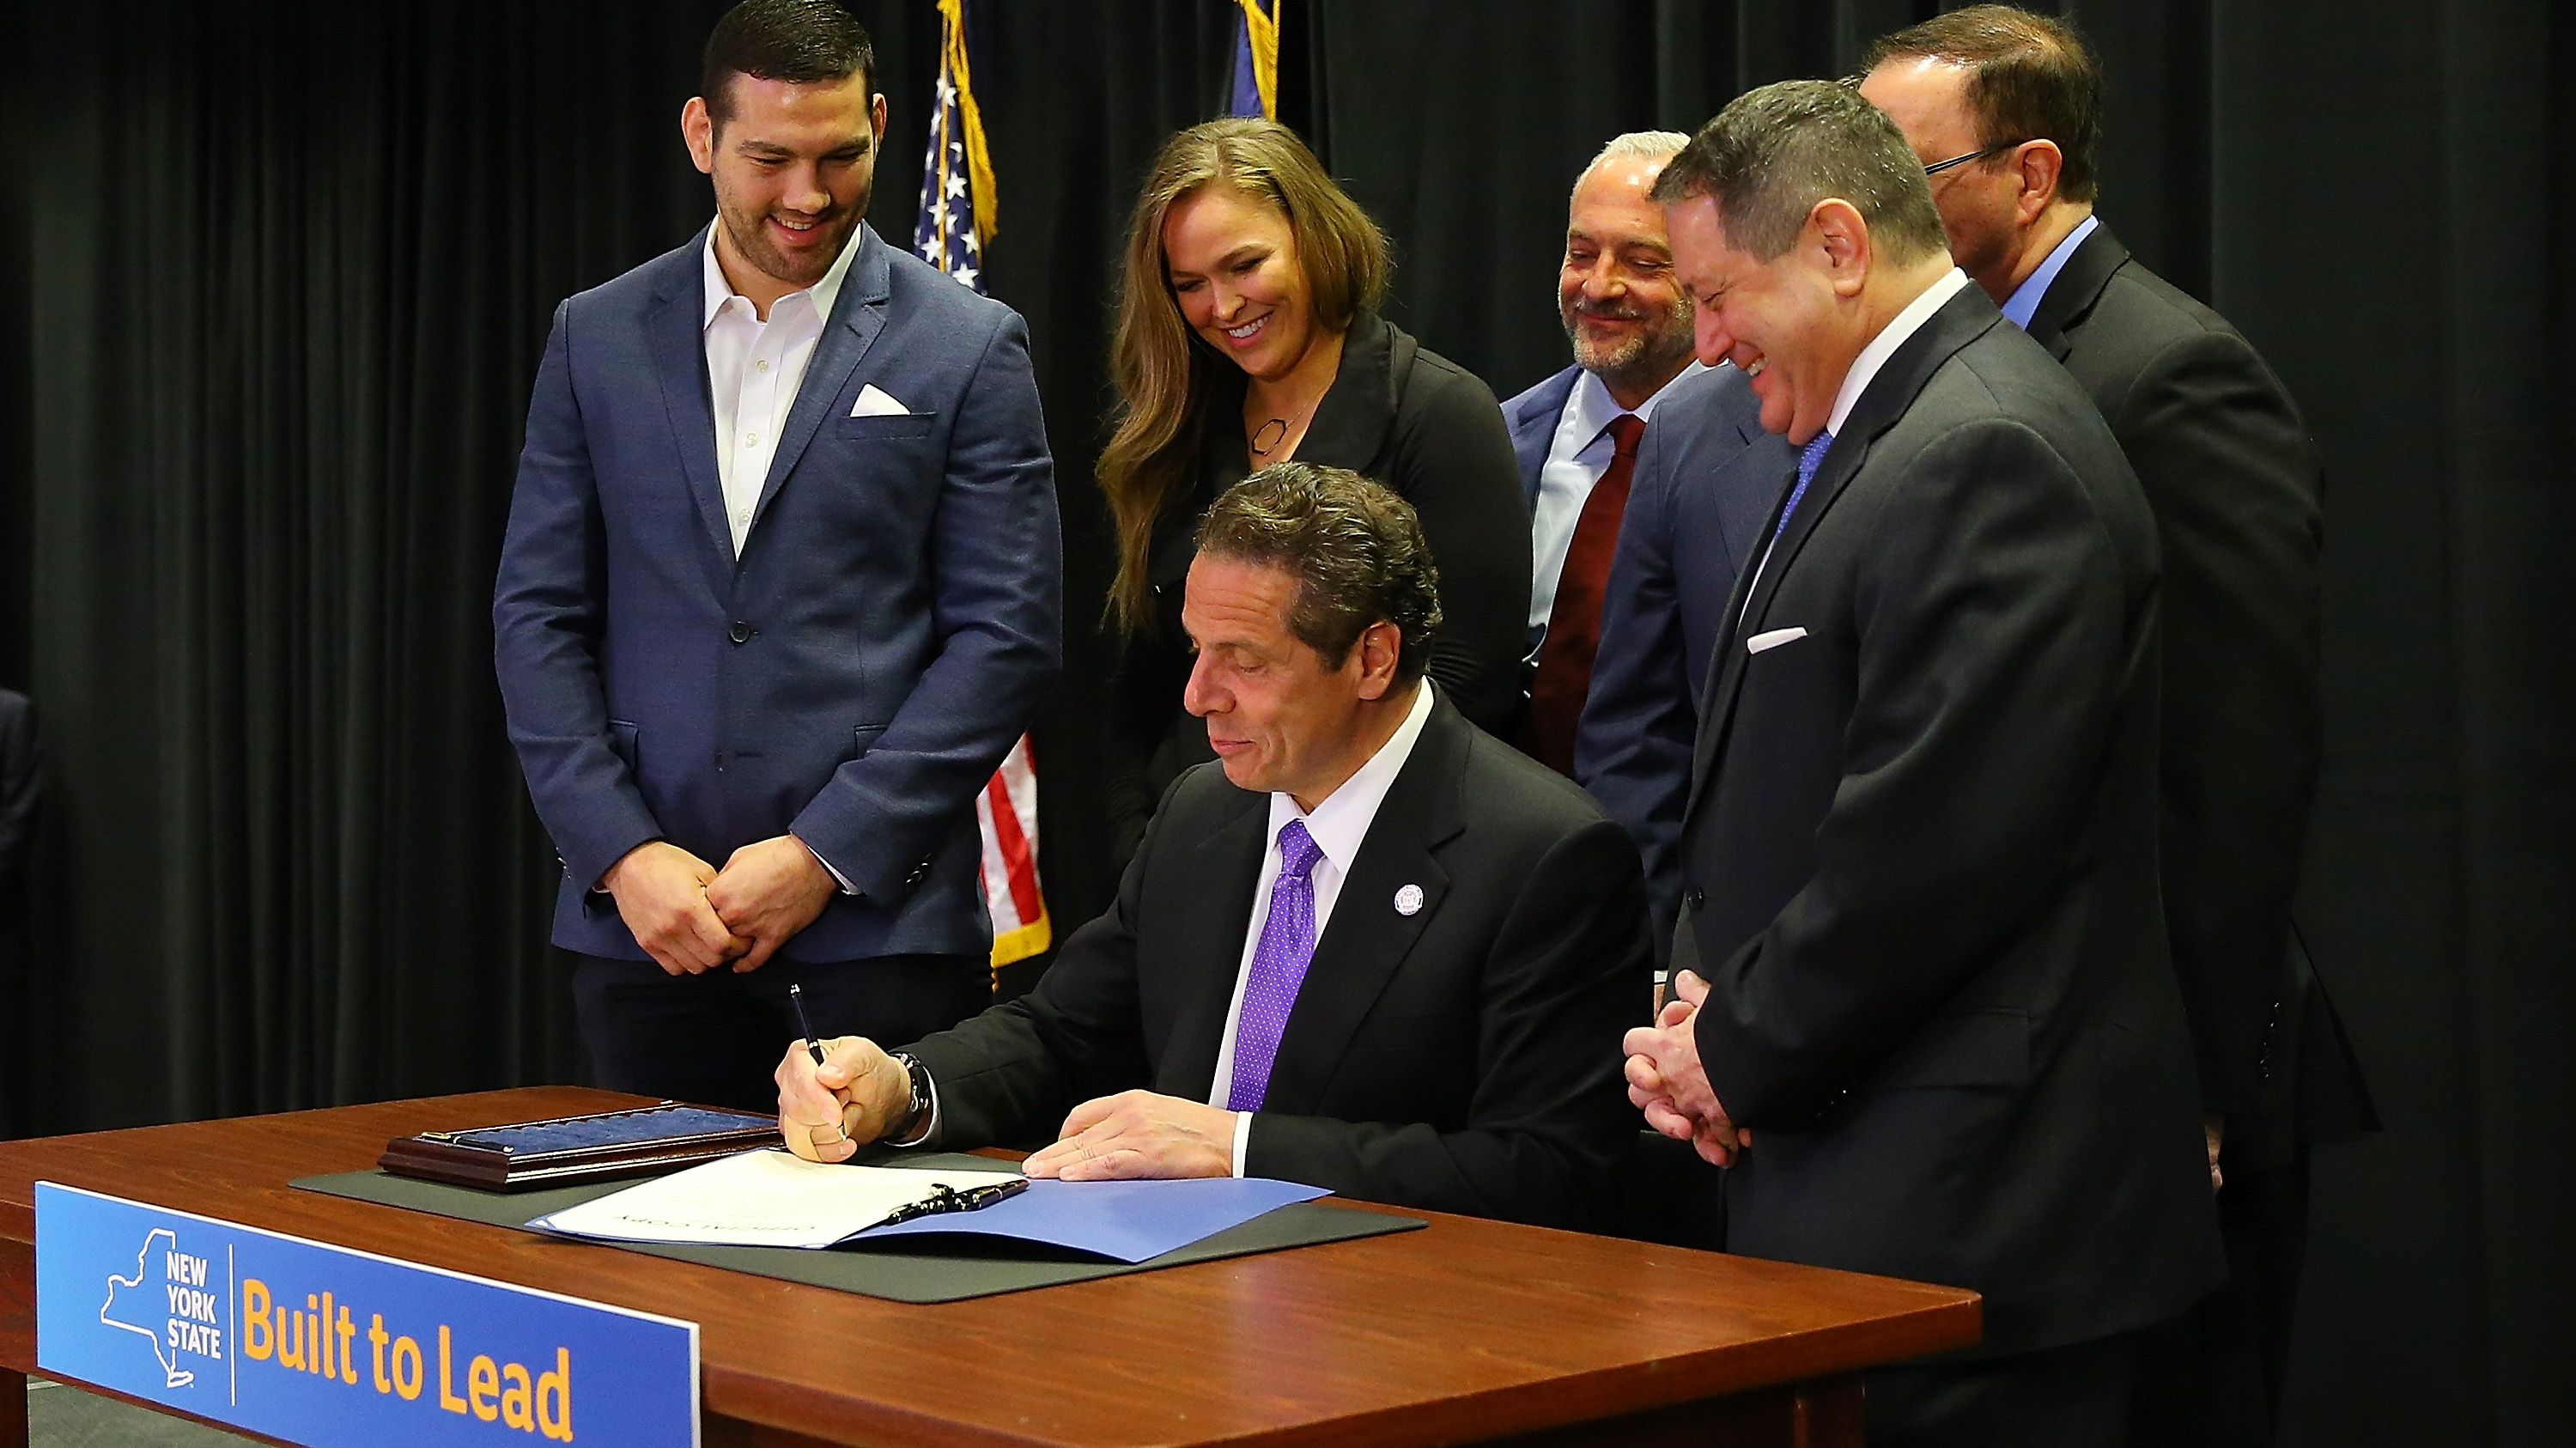 New York Governor Andrew Cuomo is joined by (from left) UFC fighters Chris Weidman and Ronda Rousey, UFC CEO Lorenzo Fertitta, Madison Square Garden President James Dolan, Senator Joe Griffo and Assemblyman Joseph Morelle as he signs a bill to legalize Mixed Martial Arts fighting in the state during a ceremony at Madison Square Garden on April 14, 2016 in New York City. (Photo by Mike Stobe/Zuffa LLC/Zuffa LLC via Getty Images)